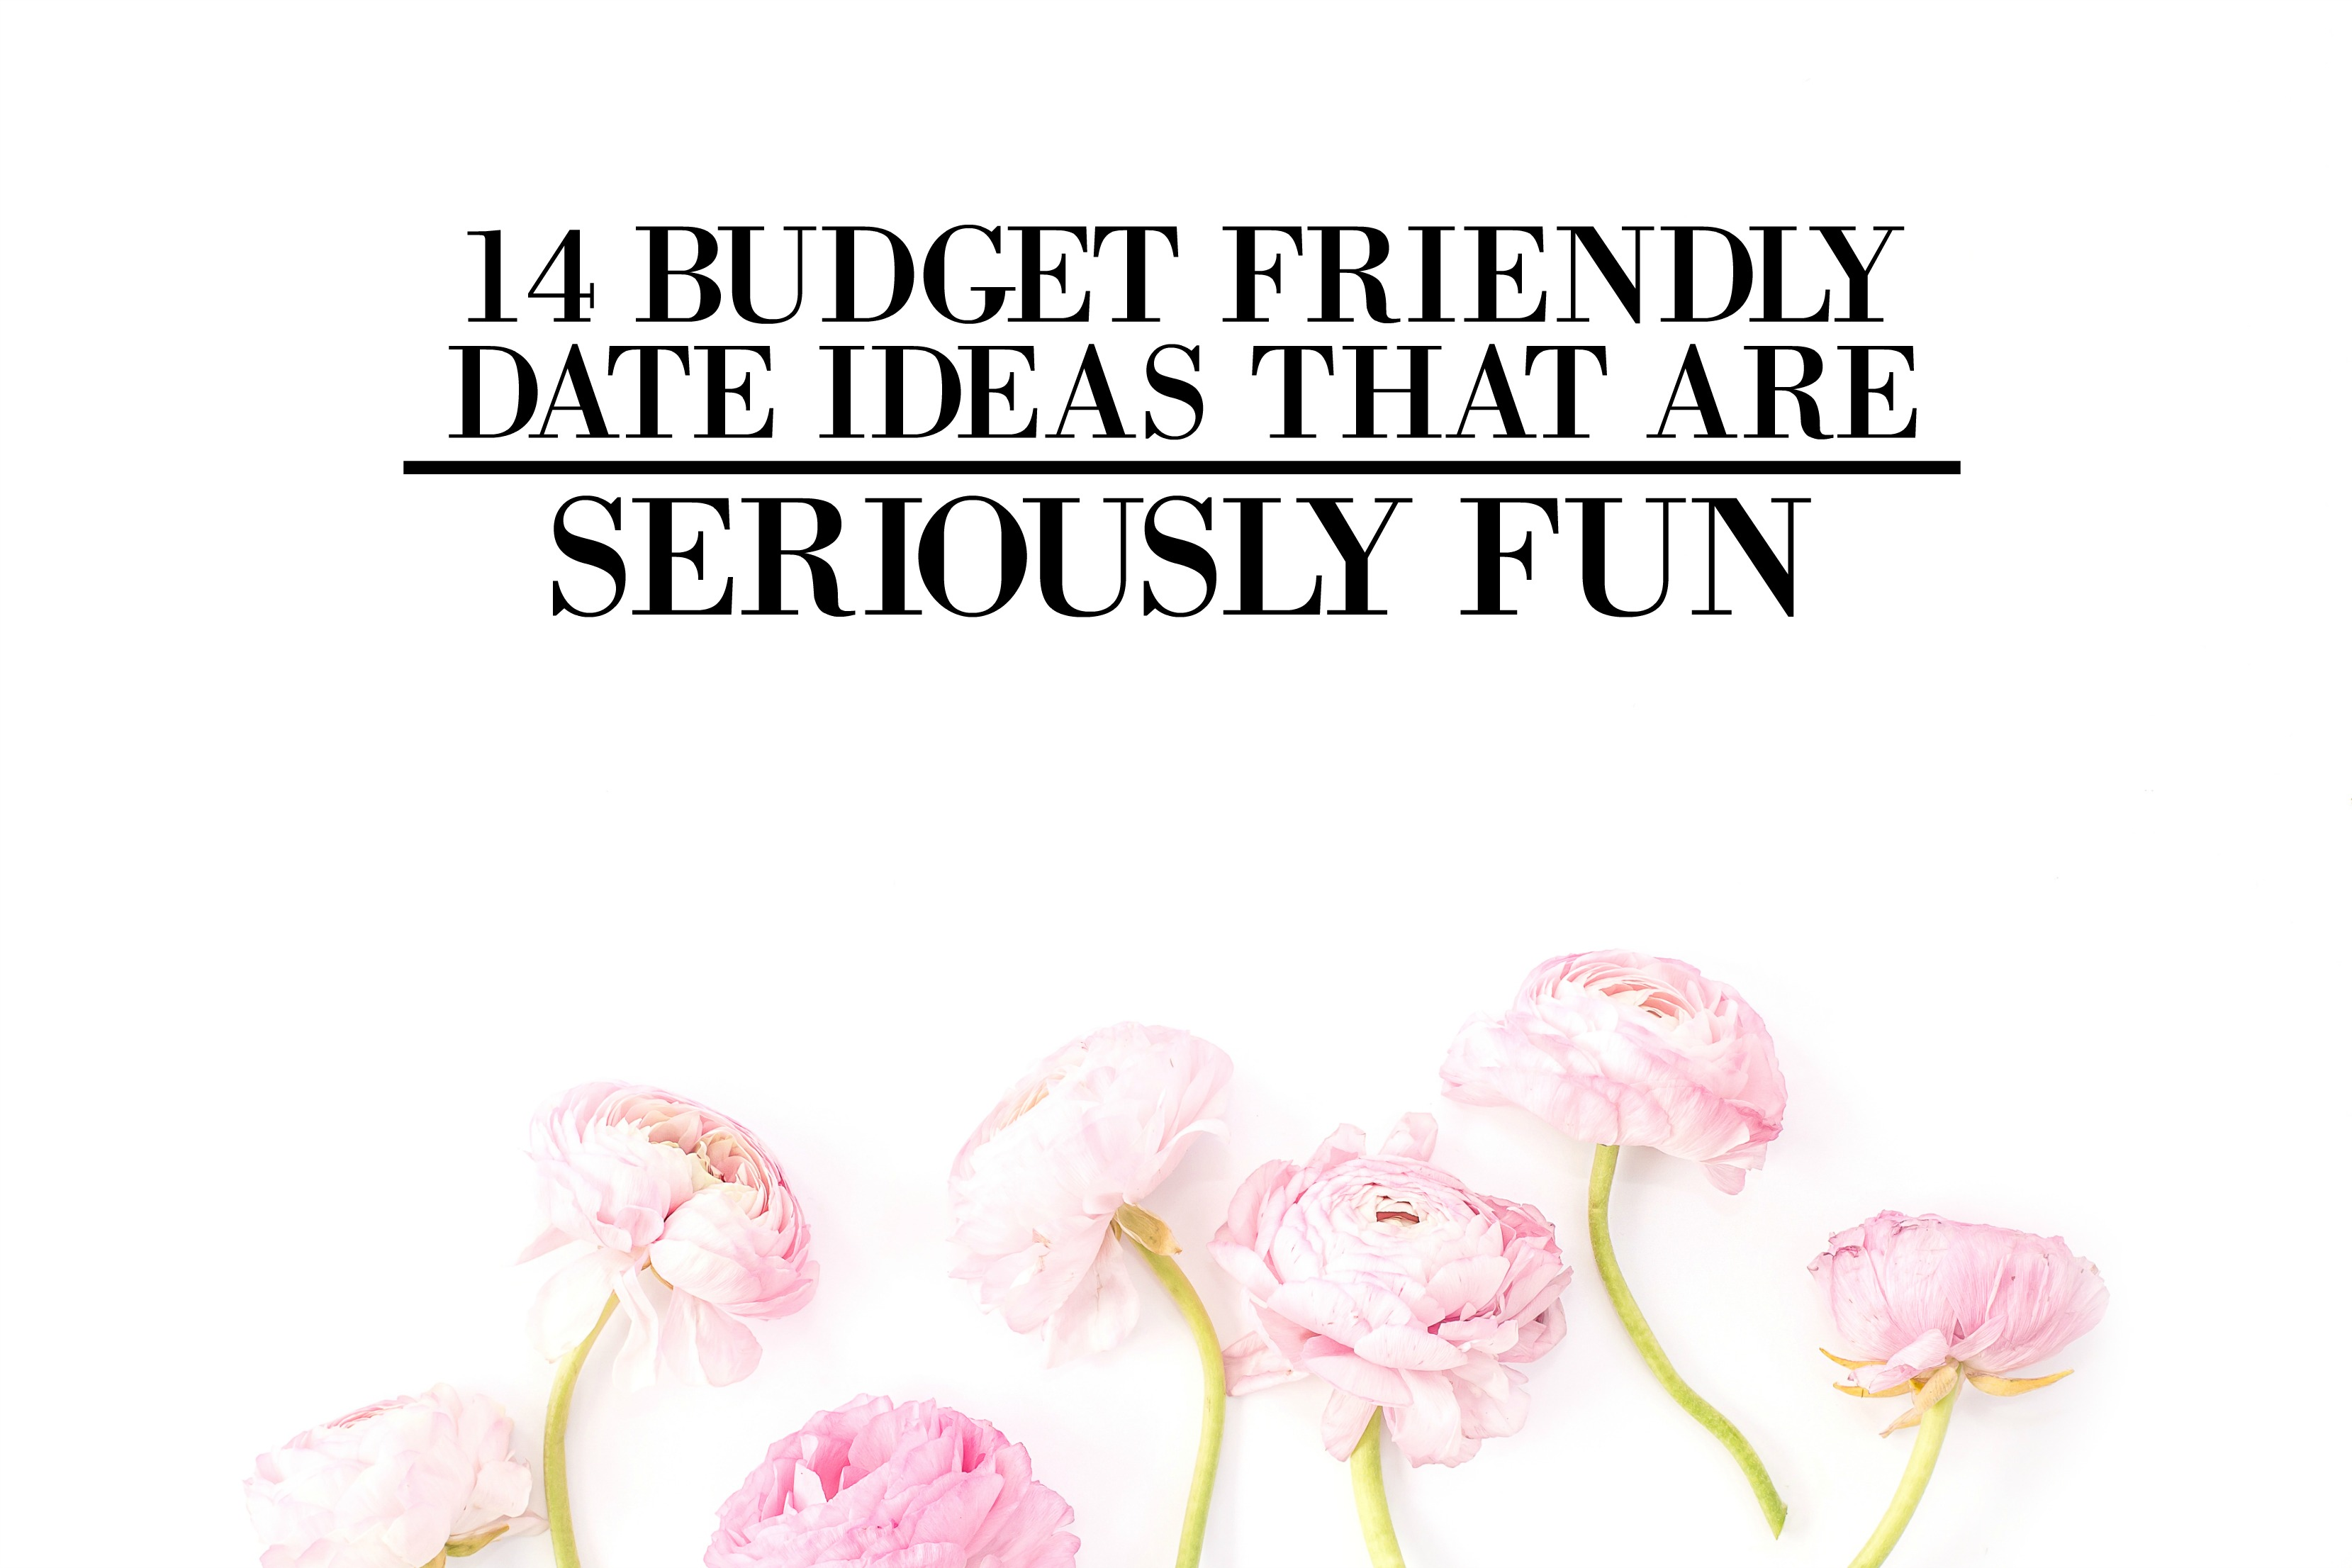 budget-friendly-date-ideas.jpg